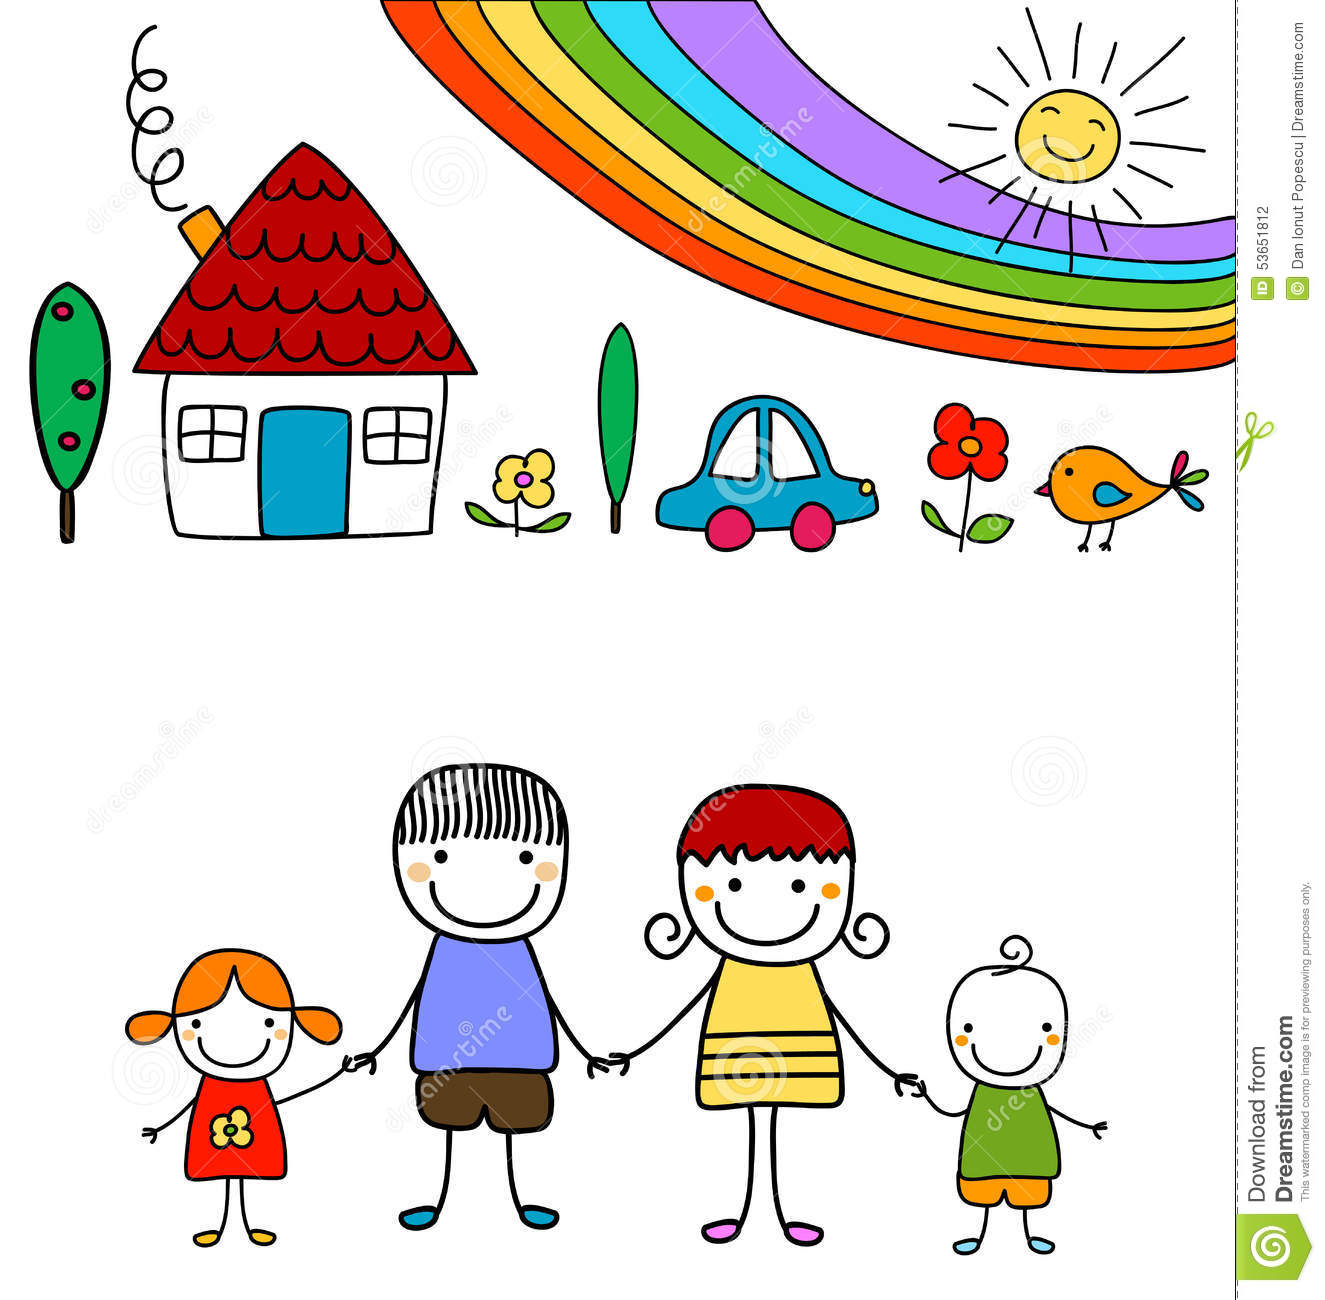 children u0027s drawing of house flowers and rainbow royalty free